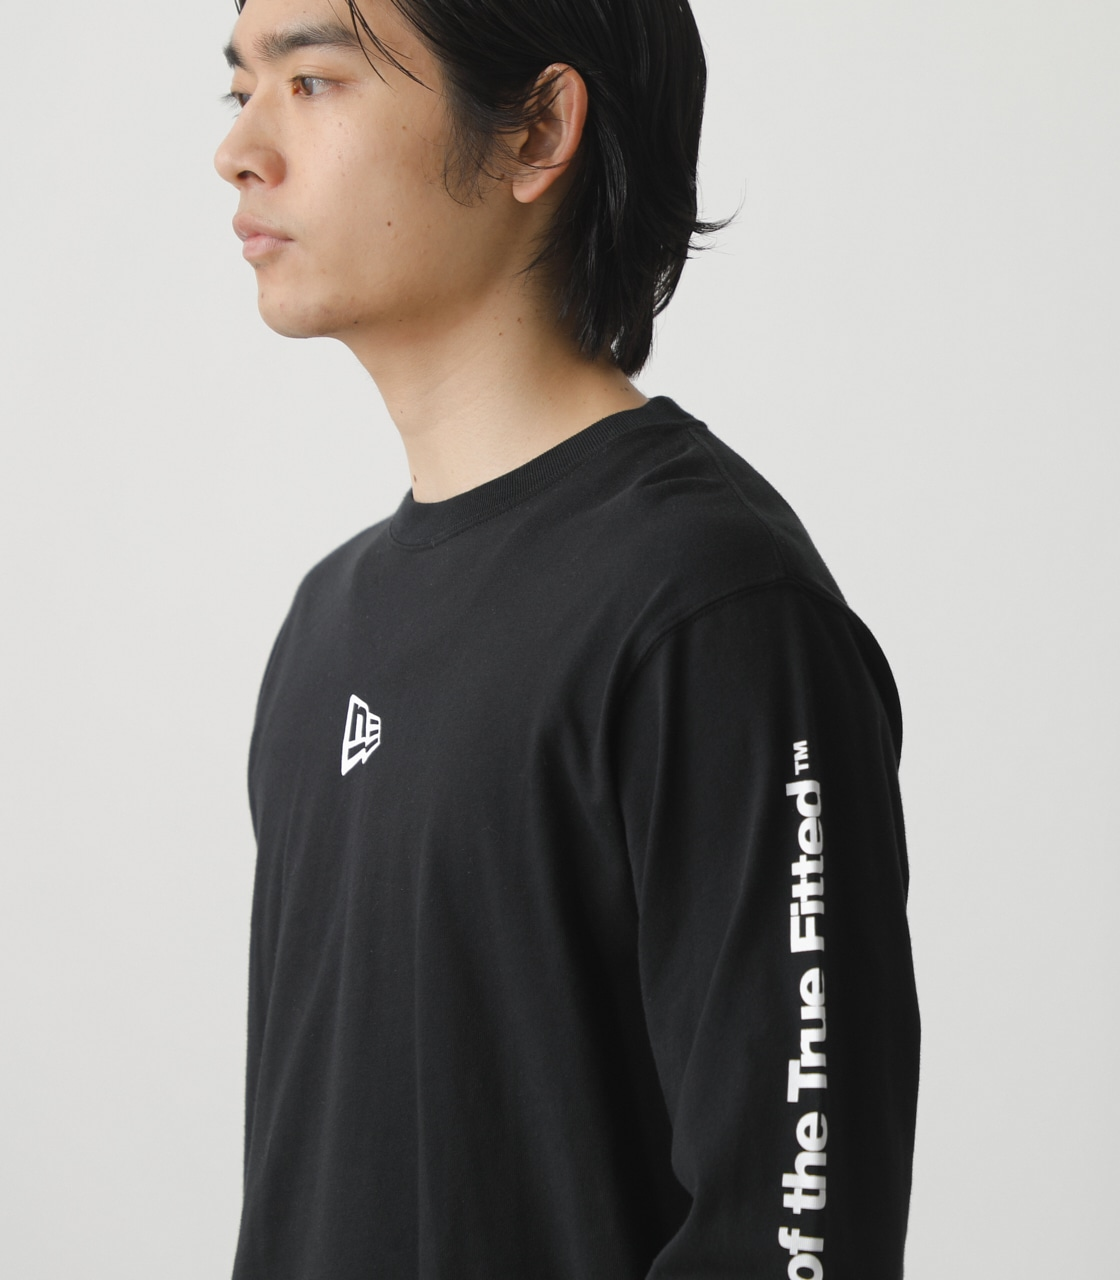 NEW ERA×AZUL LONG T-SHIRTS/NEW ERA×AZULロングTシャツ 詳細画像 BLK 3